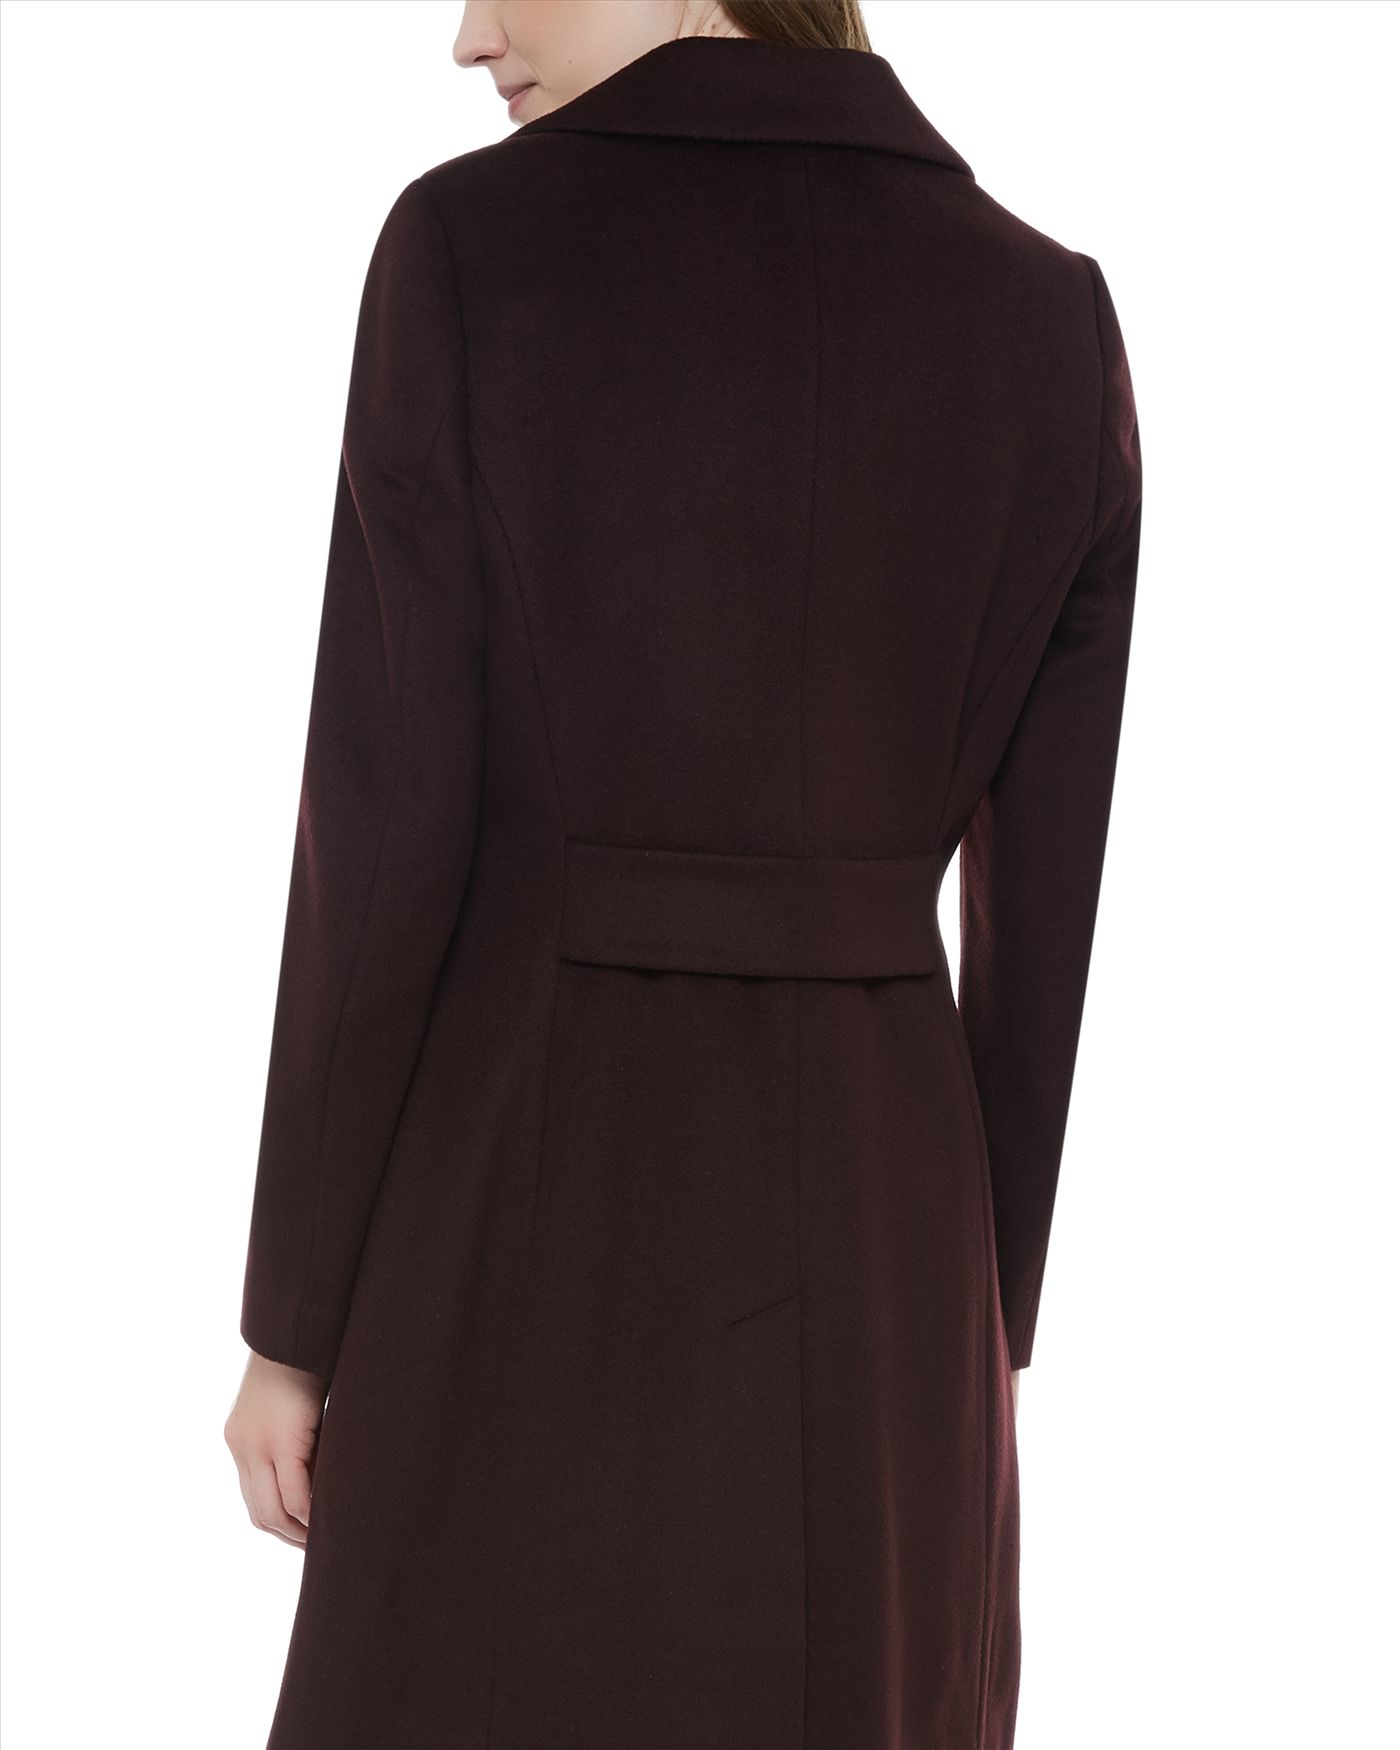 Jaeger Wool Three-button Coat in Brown | Lyst